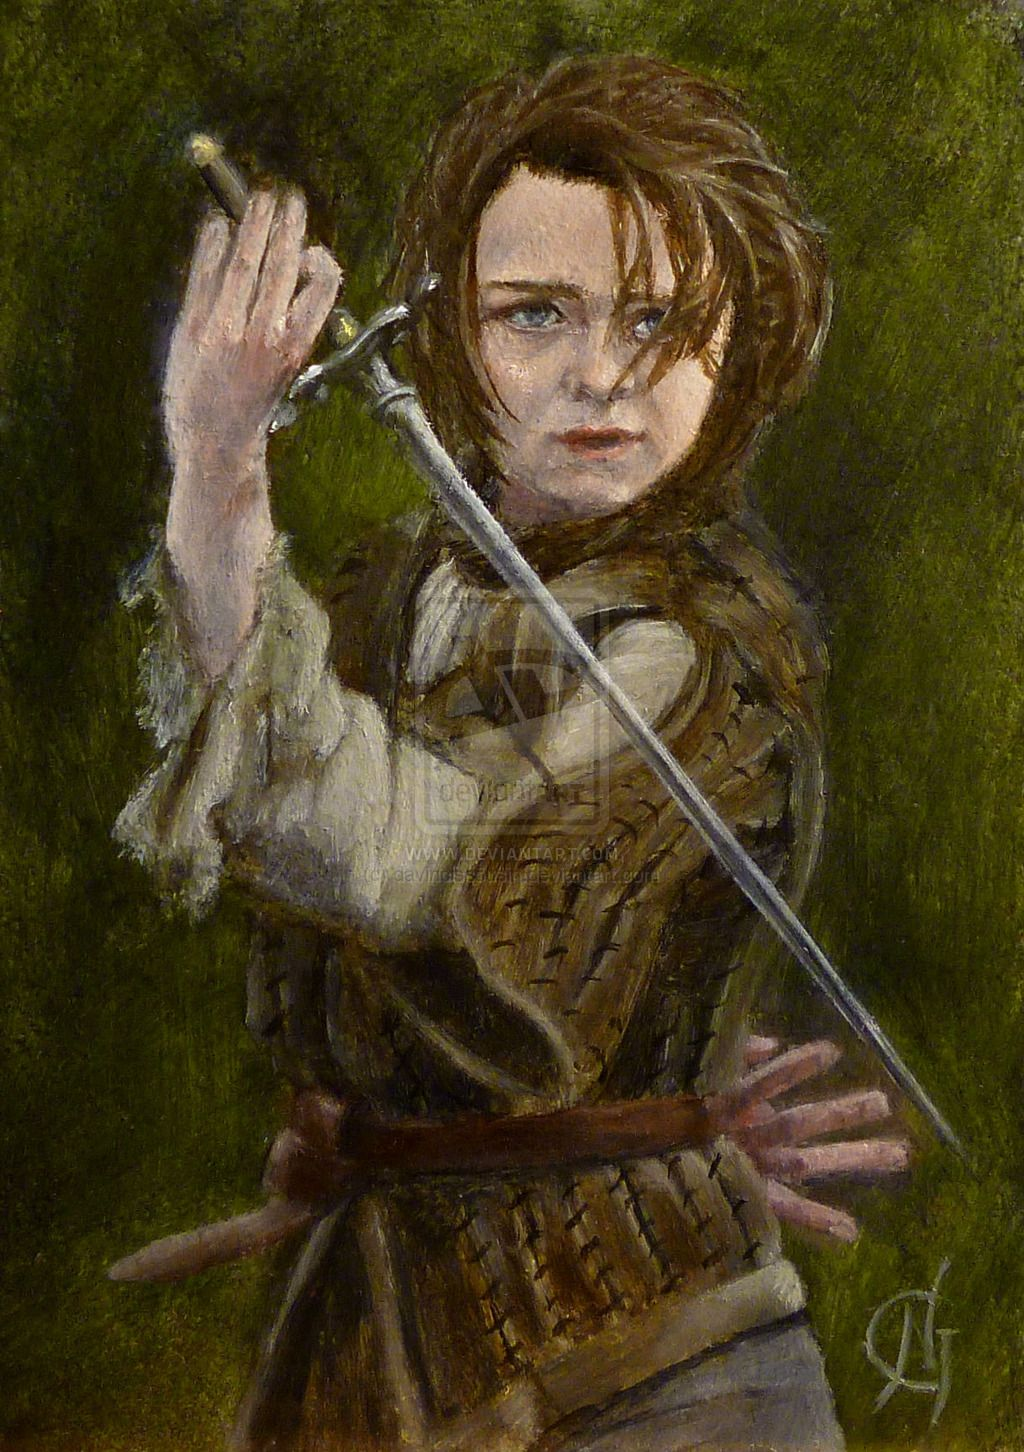 Arya Stark - Game of Thrones by davinciscousin.deviantart.com on @deviantART